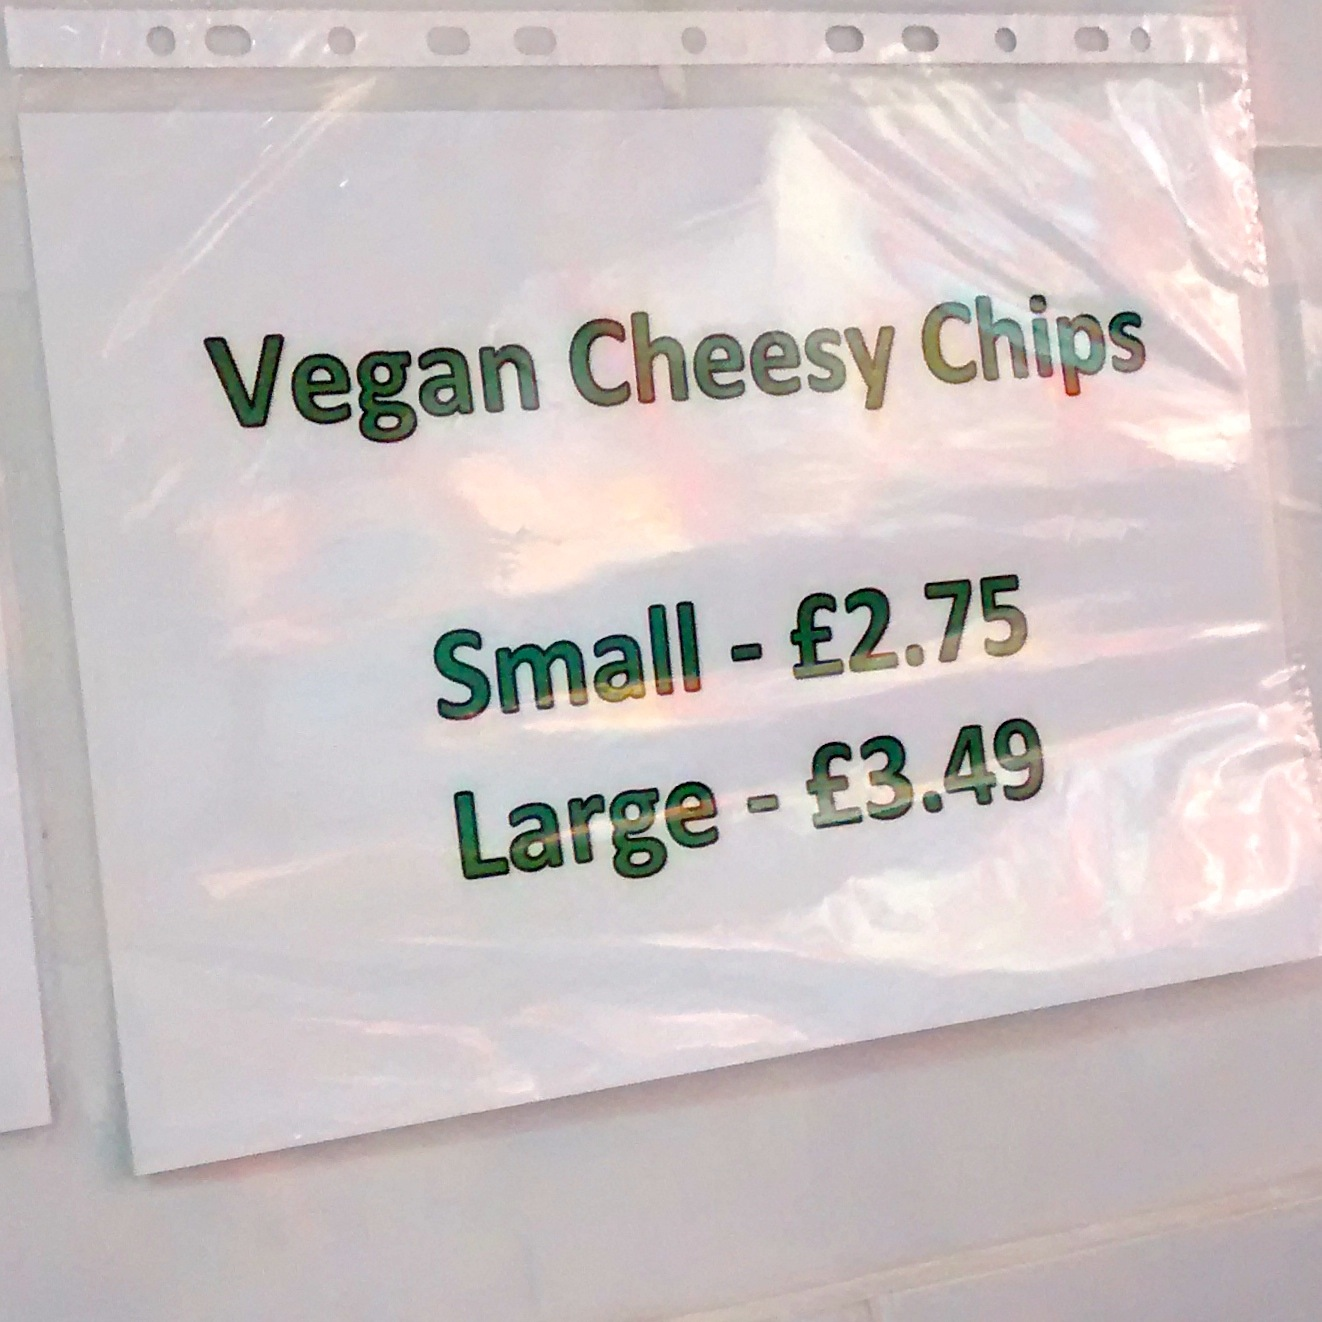 https://i0.wp.com/fatgayvegan.com/wp-content/uploads/2014/09/sign-vegan-cheese-chips.jpg?fit=1322%2C1322